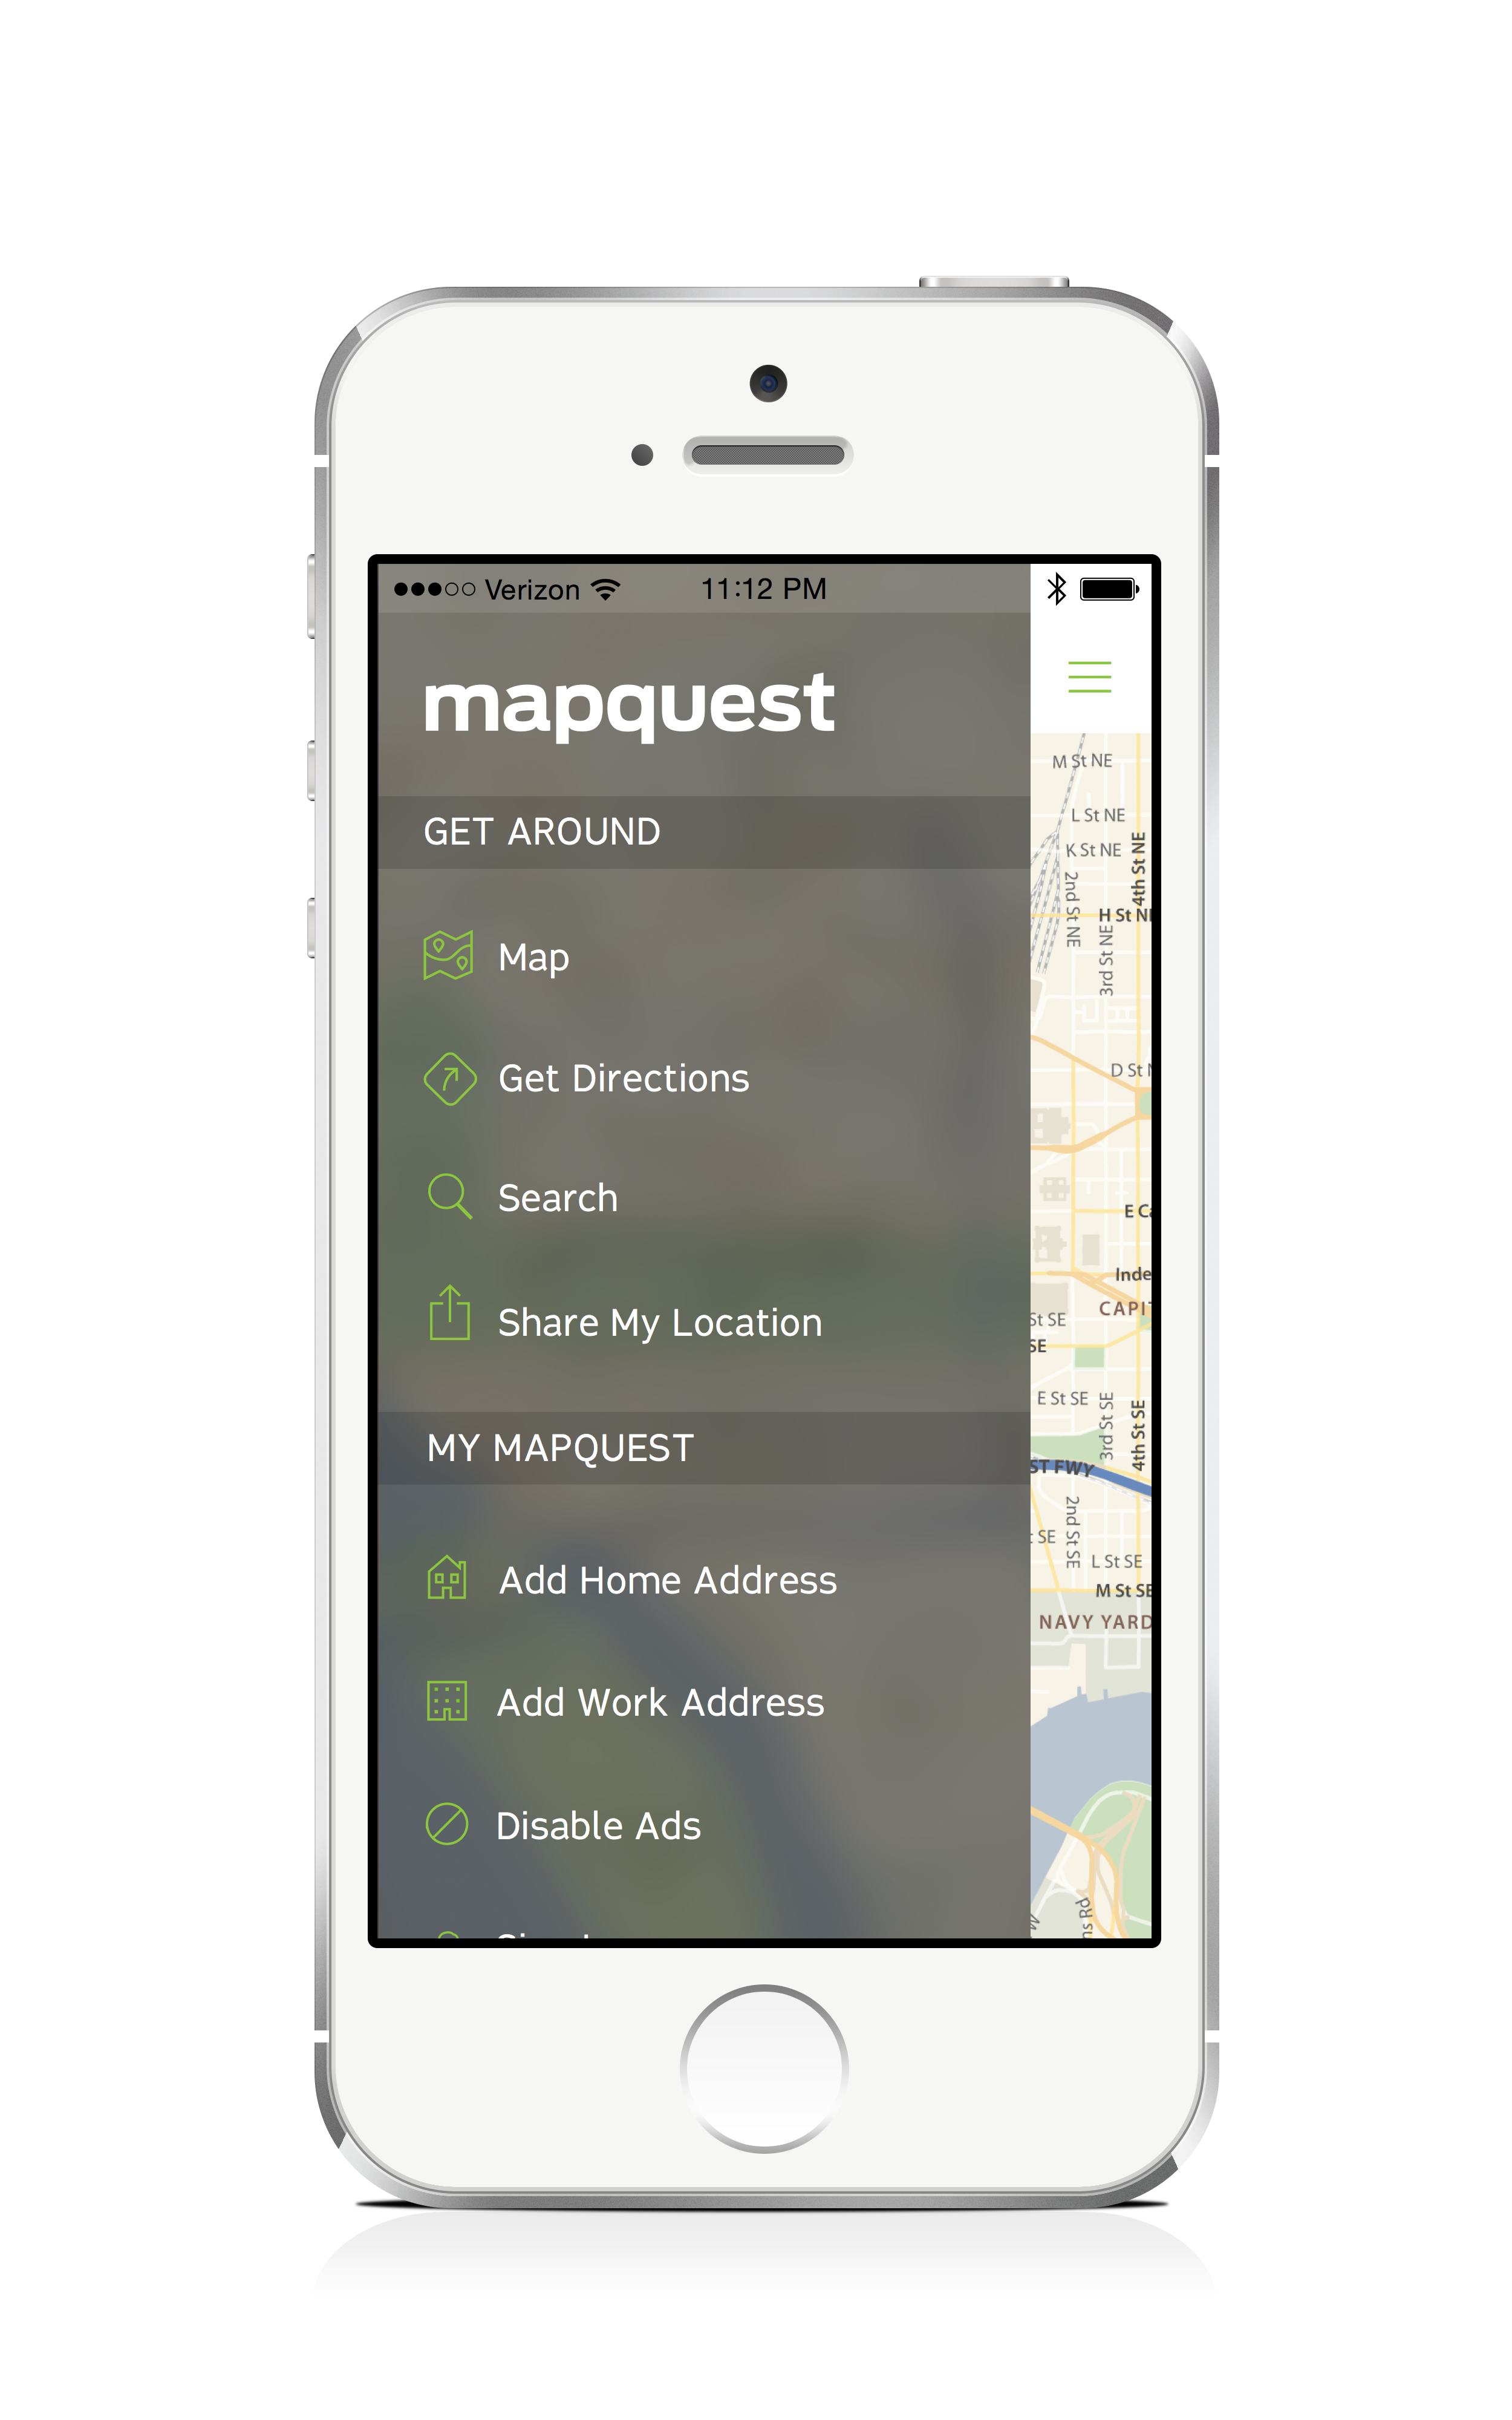 MapQuest Updates Its iPhone App With Improved Cartography And